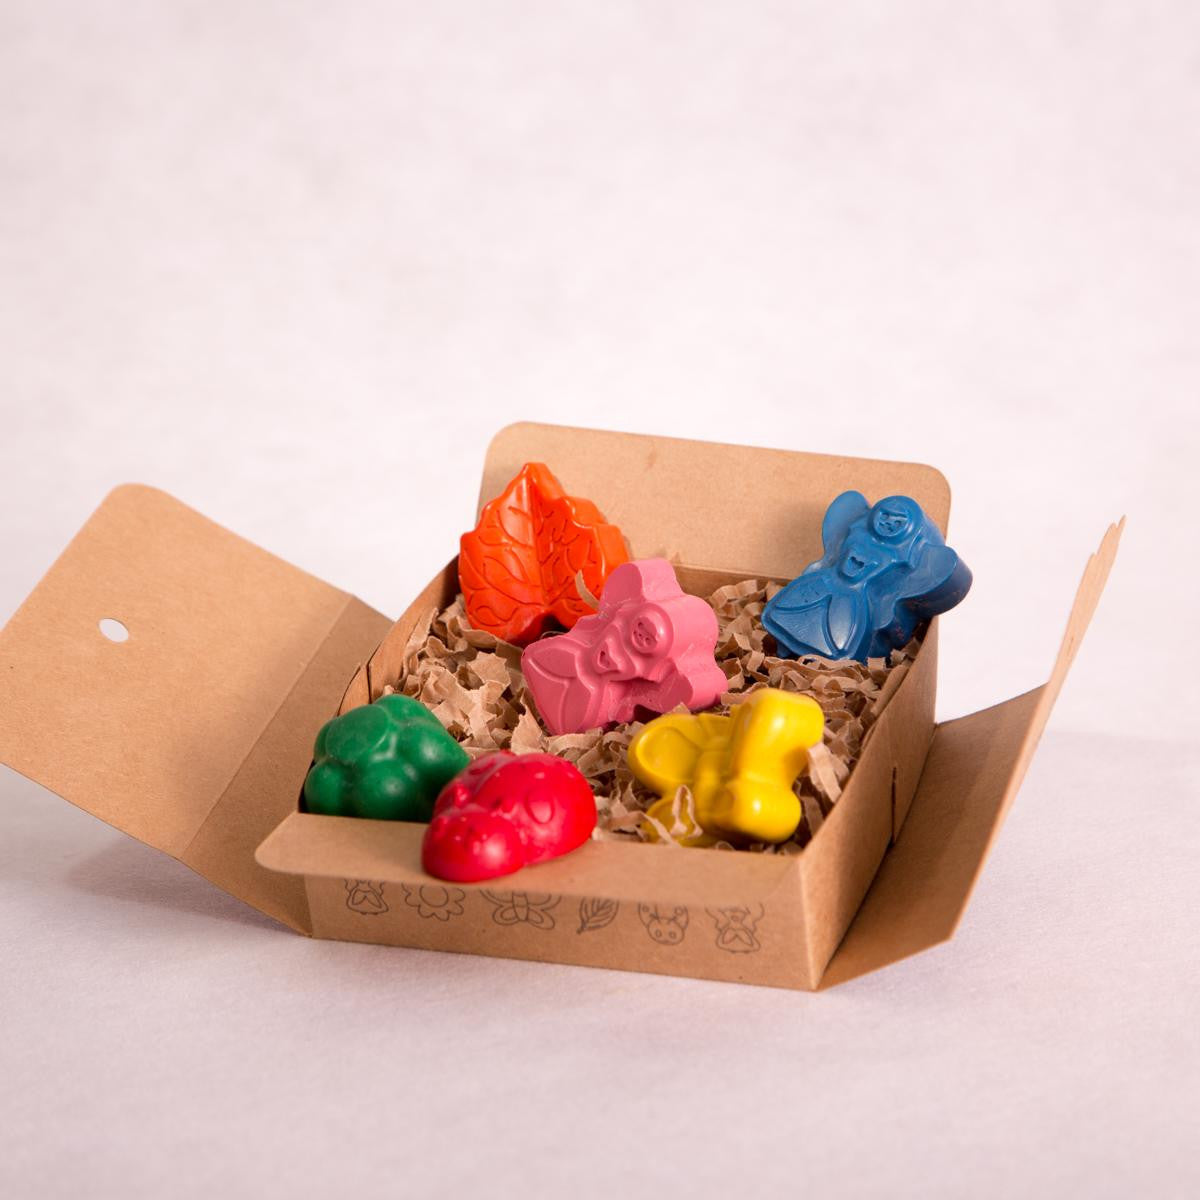 Fairy Garden Crayons - Crayons - Throw Some Seeds - Australian gardening gifts and eco products online!